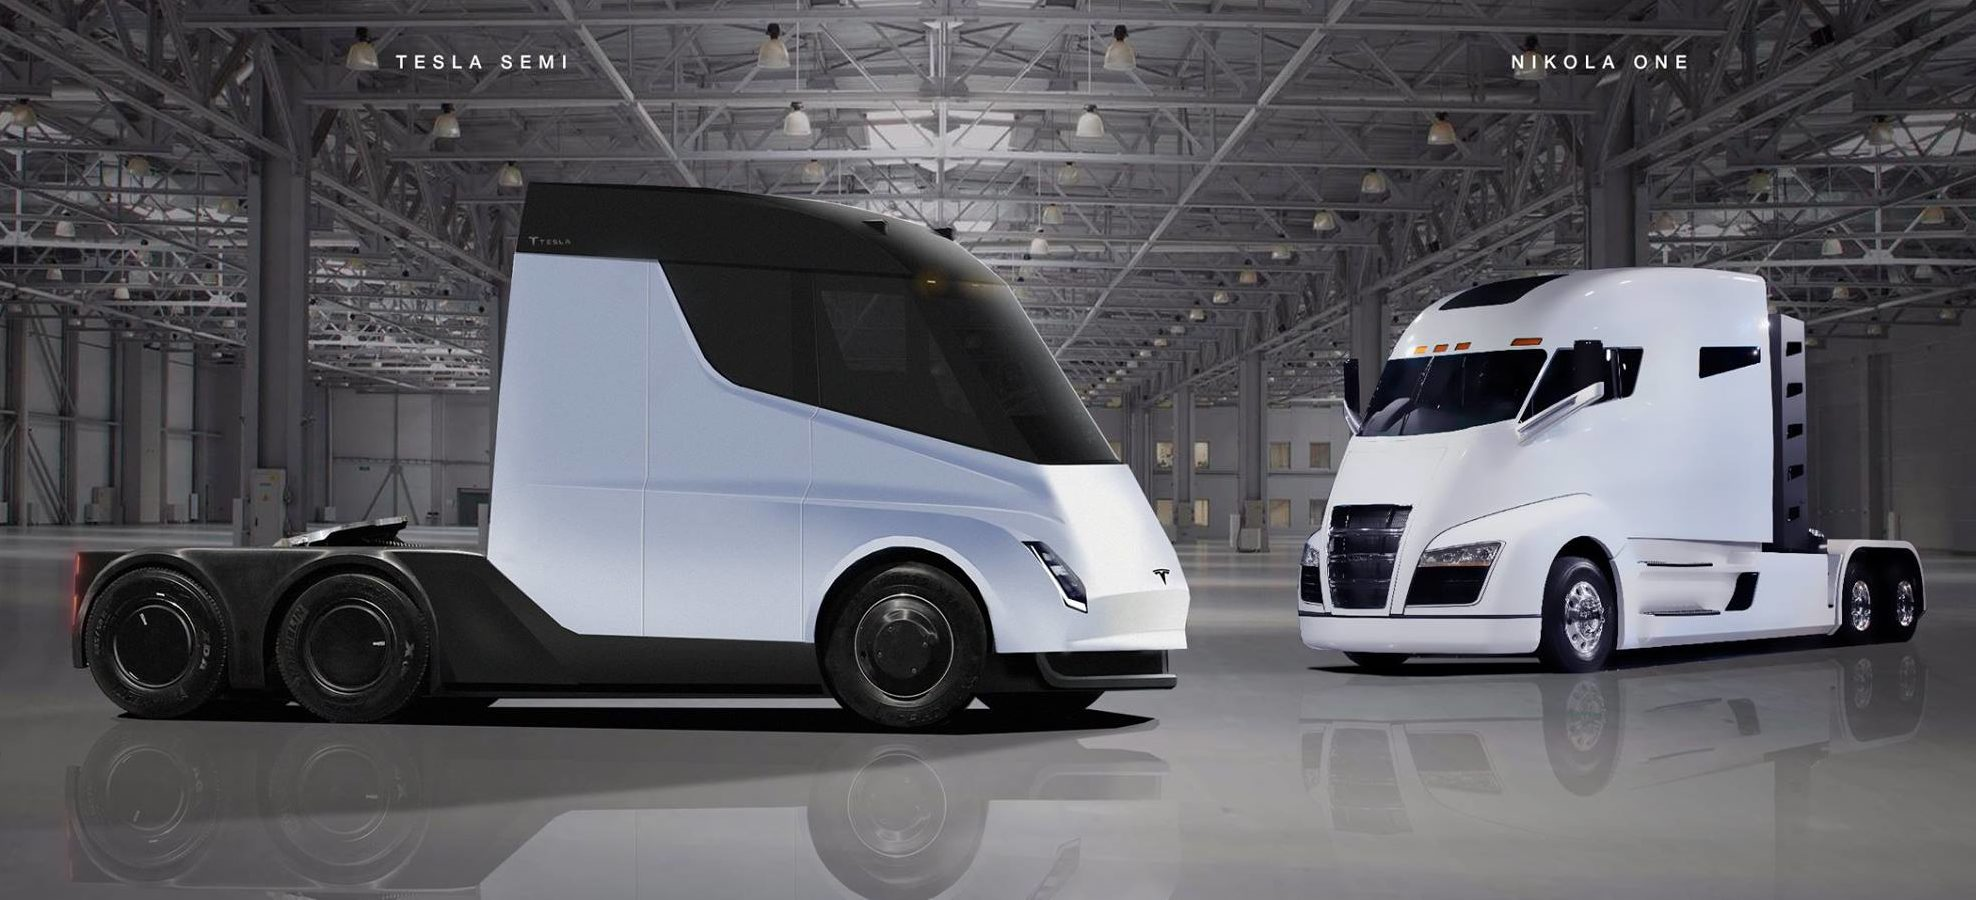 Nikola Can Easily Do All Electric Trucks Like Tesla Semi Says Exec In Interview